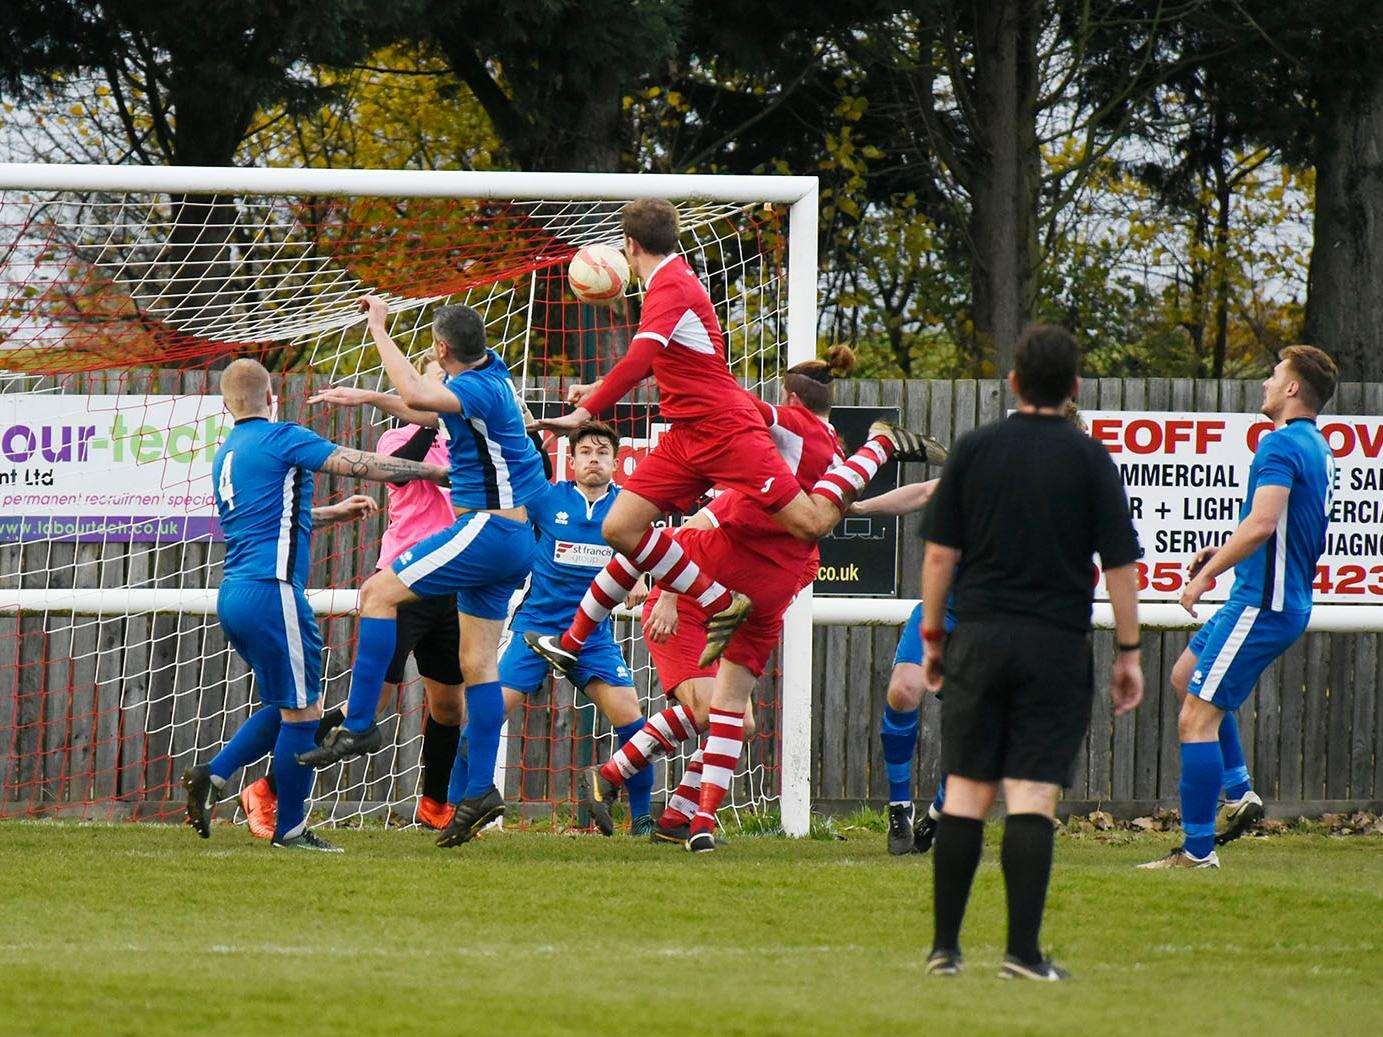 James Seymour scored for Ely in their 2-1 home win from this effort Picture: Mark Westley